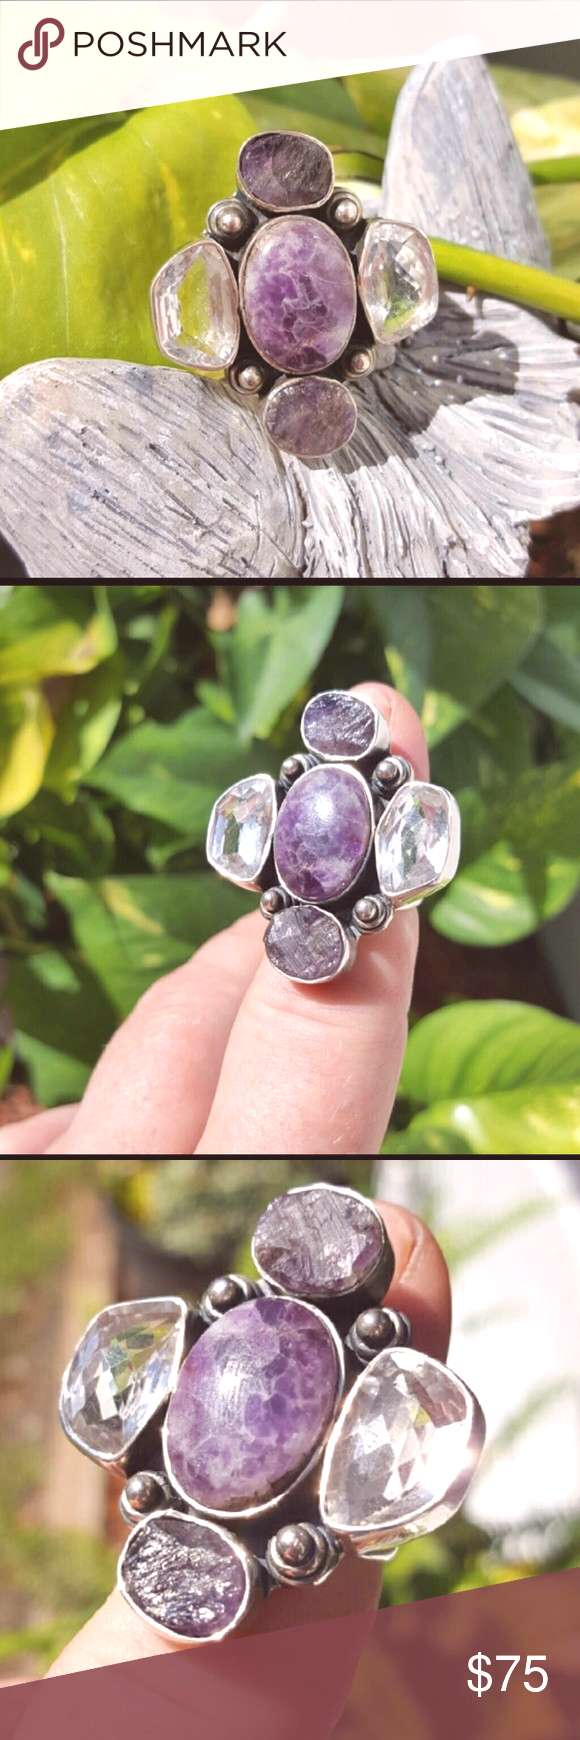 Spotted while shopping on Poshmark: Beautiful statement Amethyst silver 925 ring.!